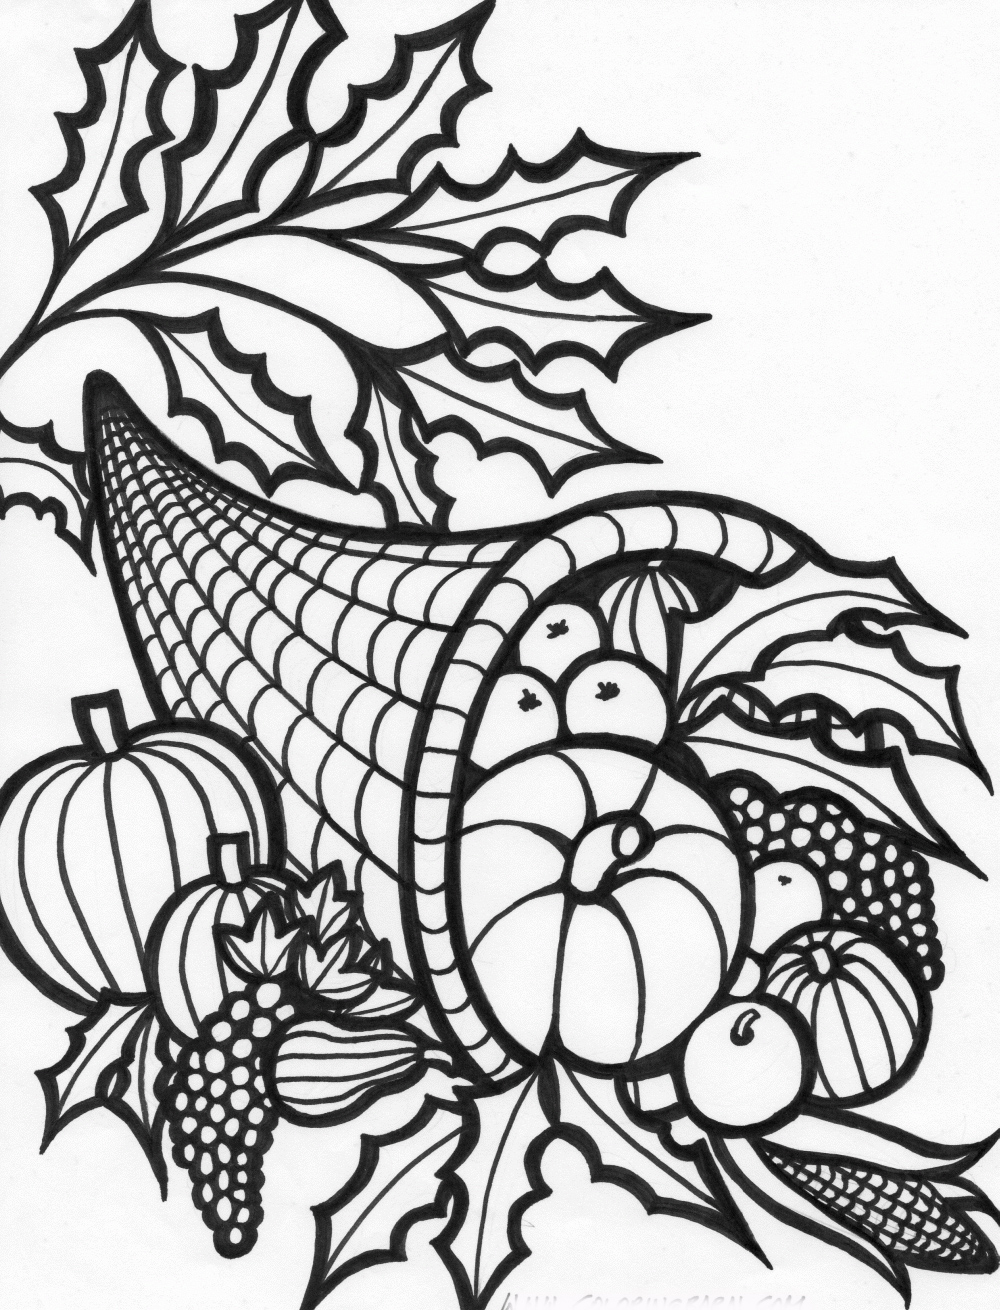 hanksgiving coloring pages - photo#19